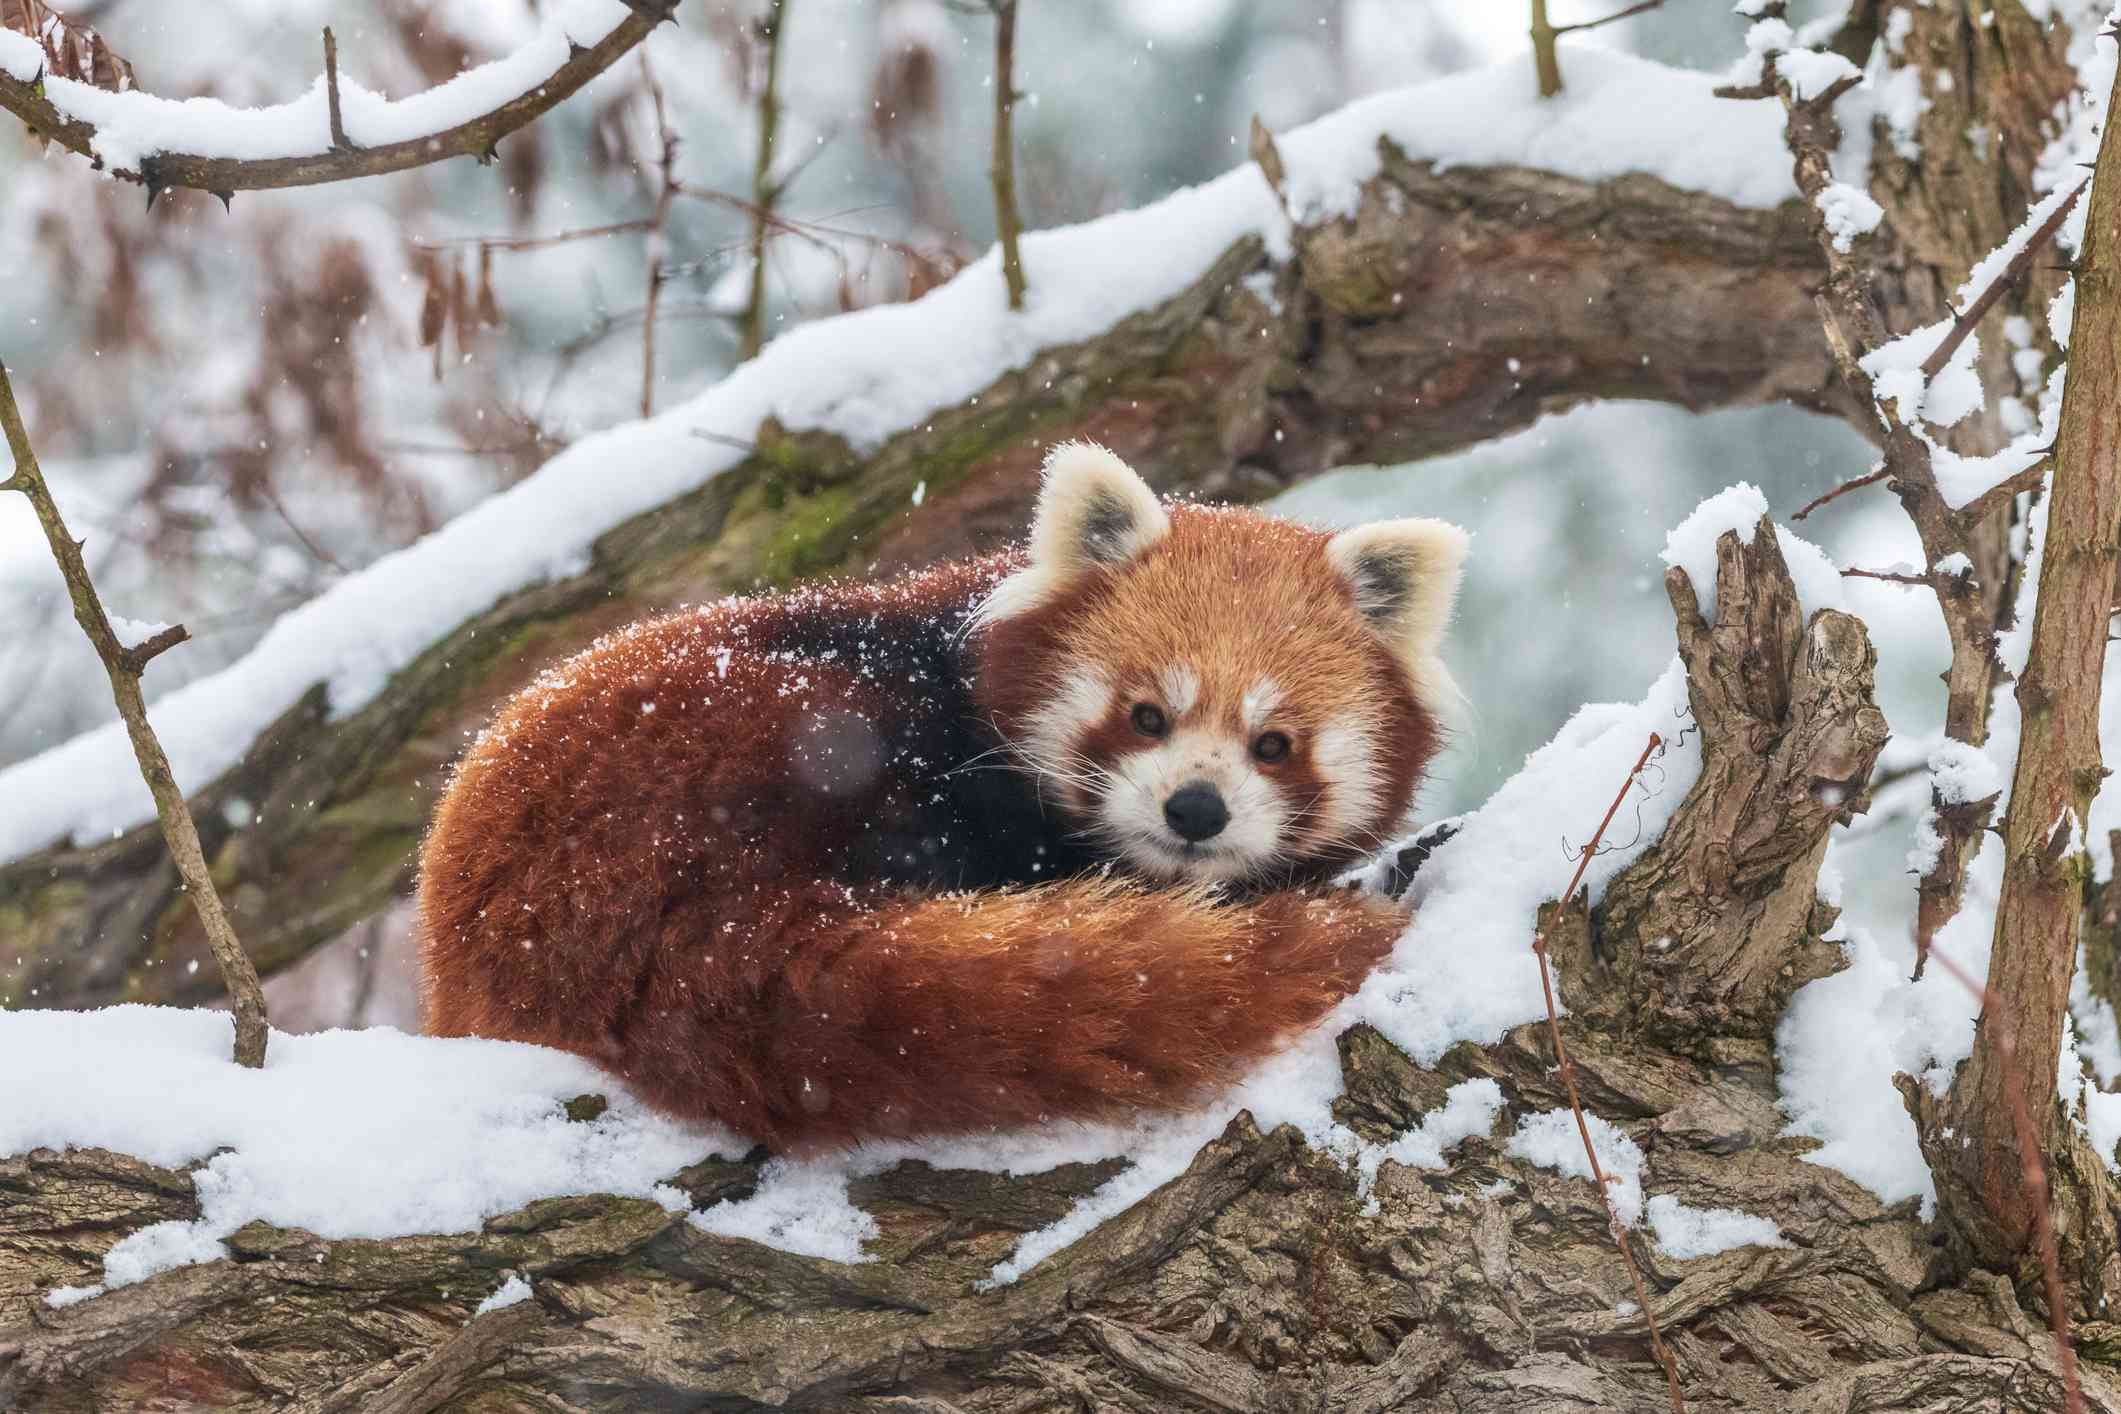 A red panda curled up in the snow